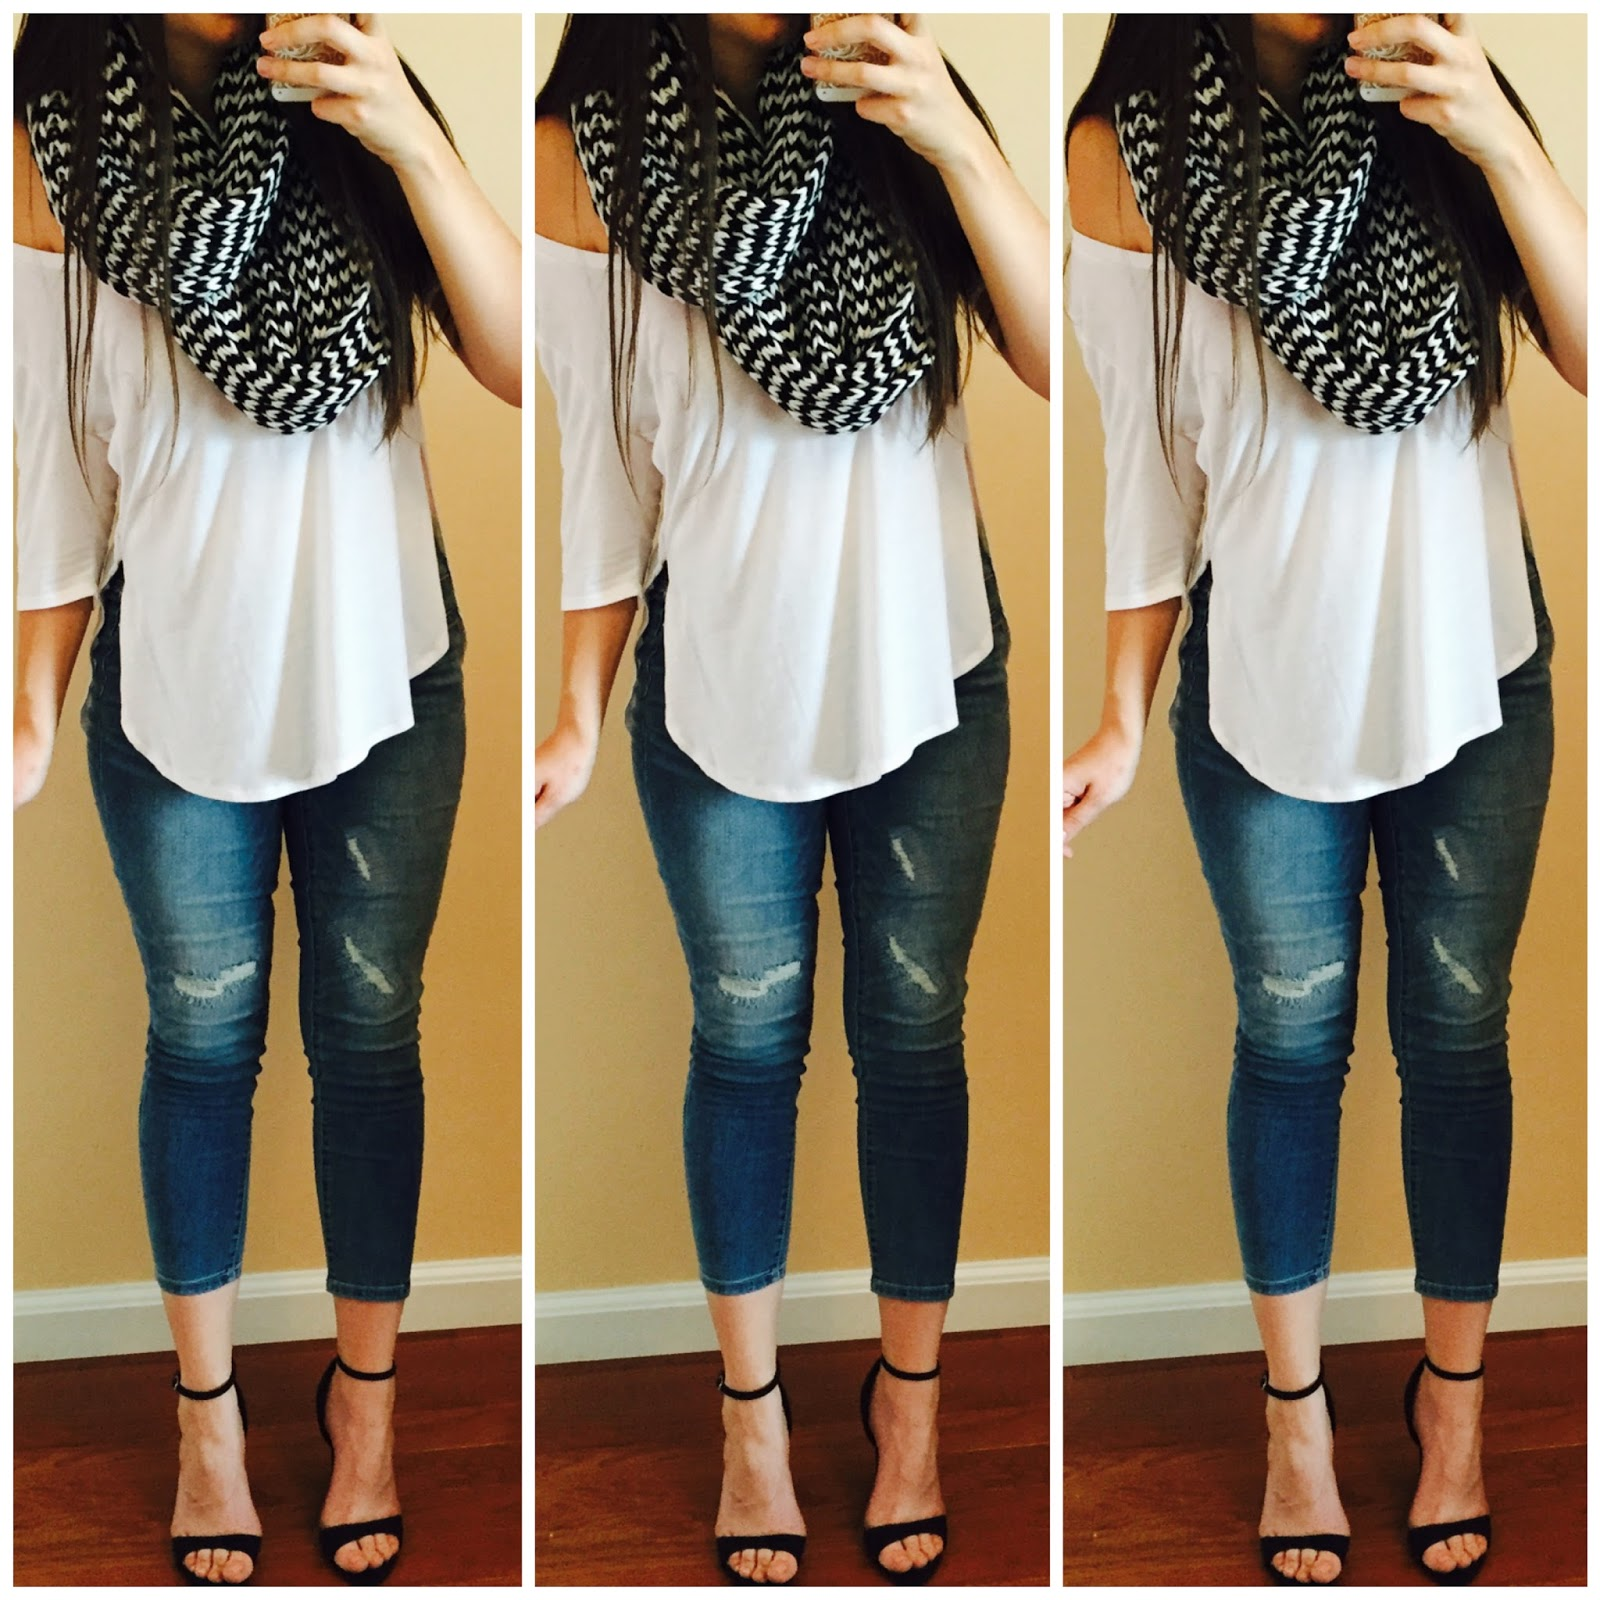 how to style, How to style jeans, how to style target jeans, skinny jeans, target denim, what to wear with boyfriend jeans, what to wear with skinny jeans,